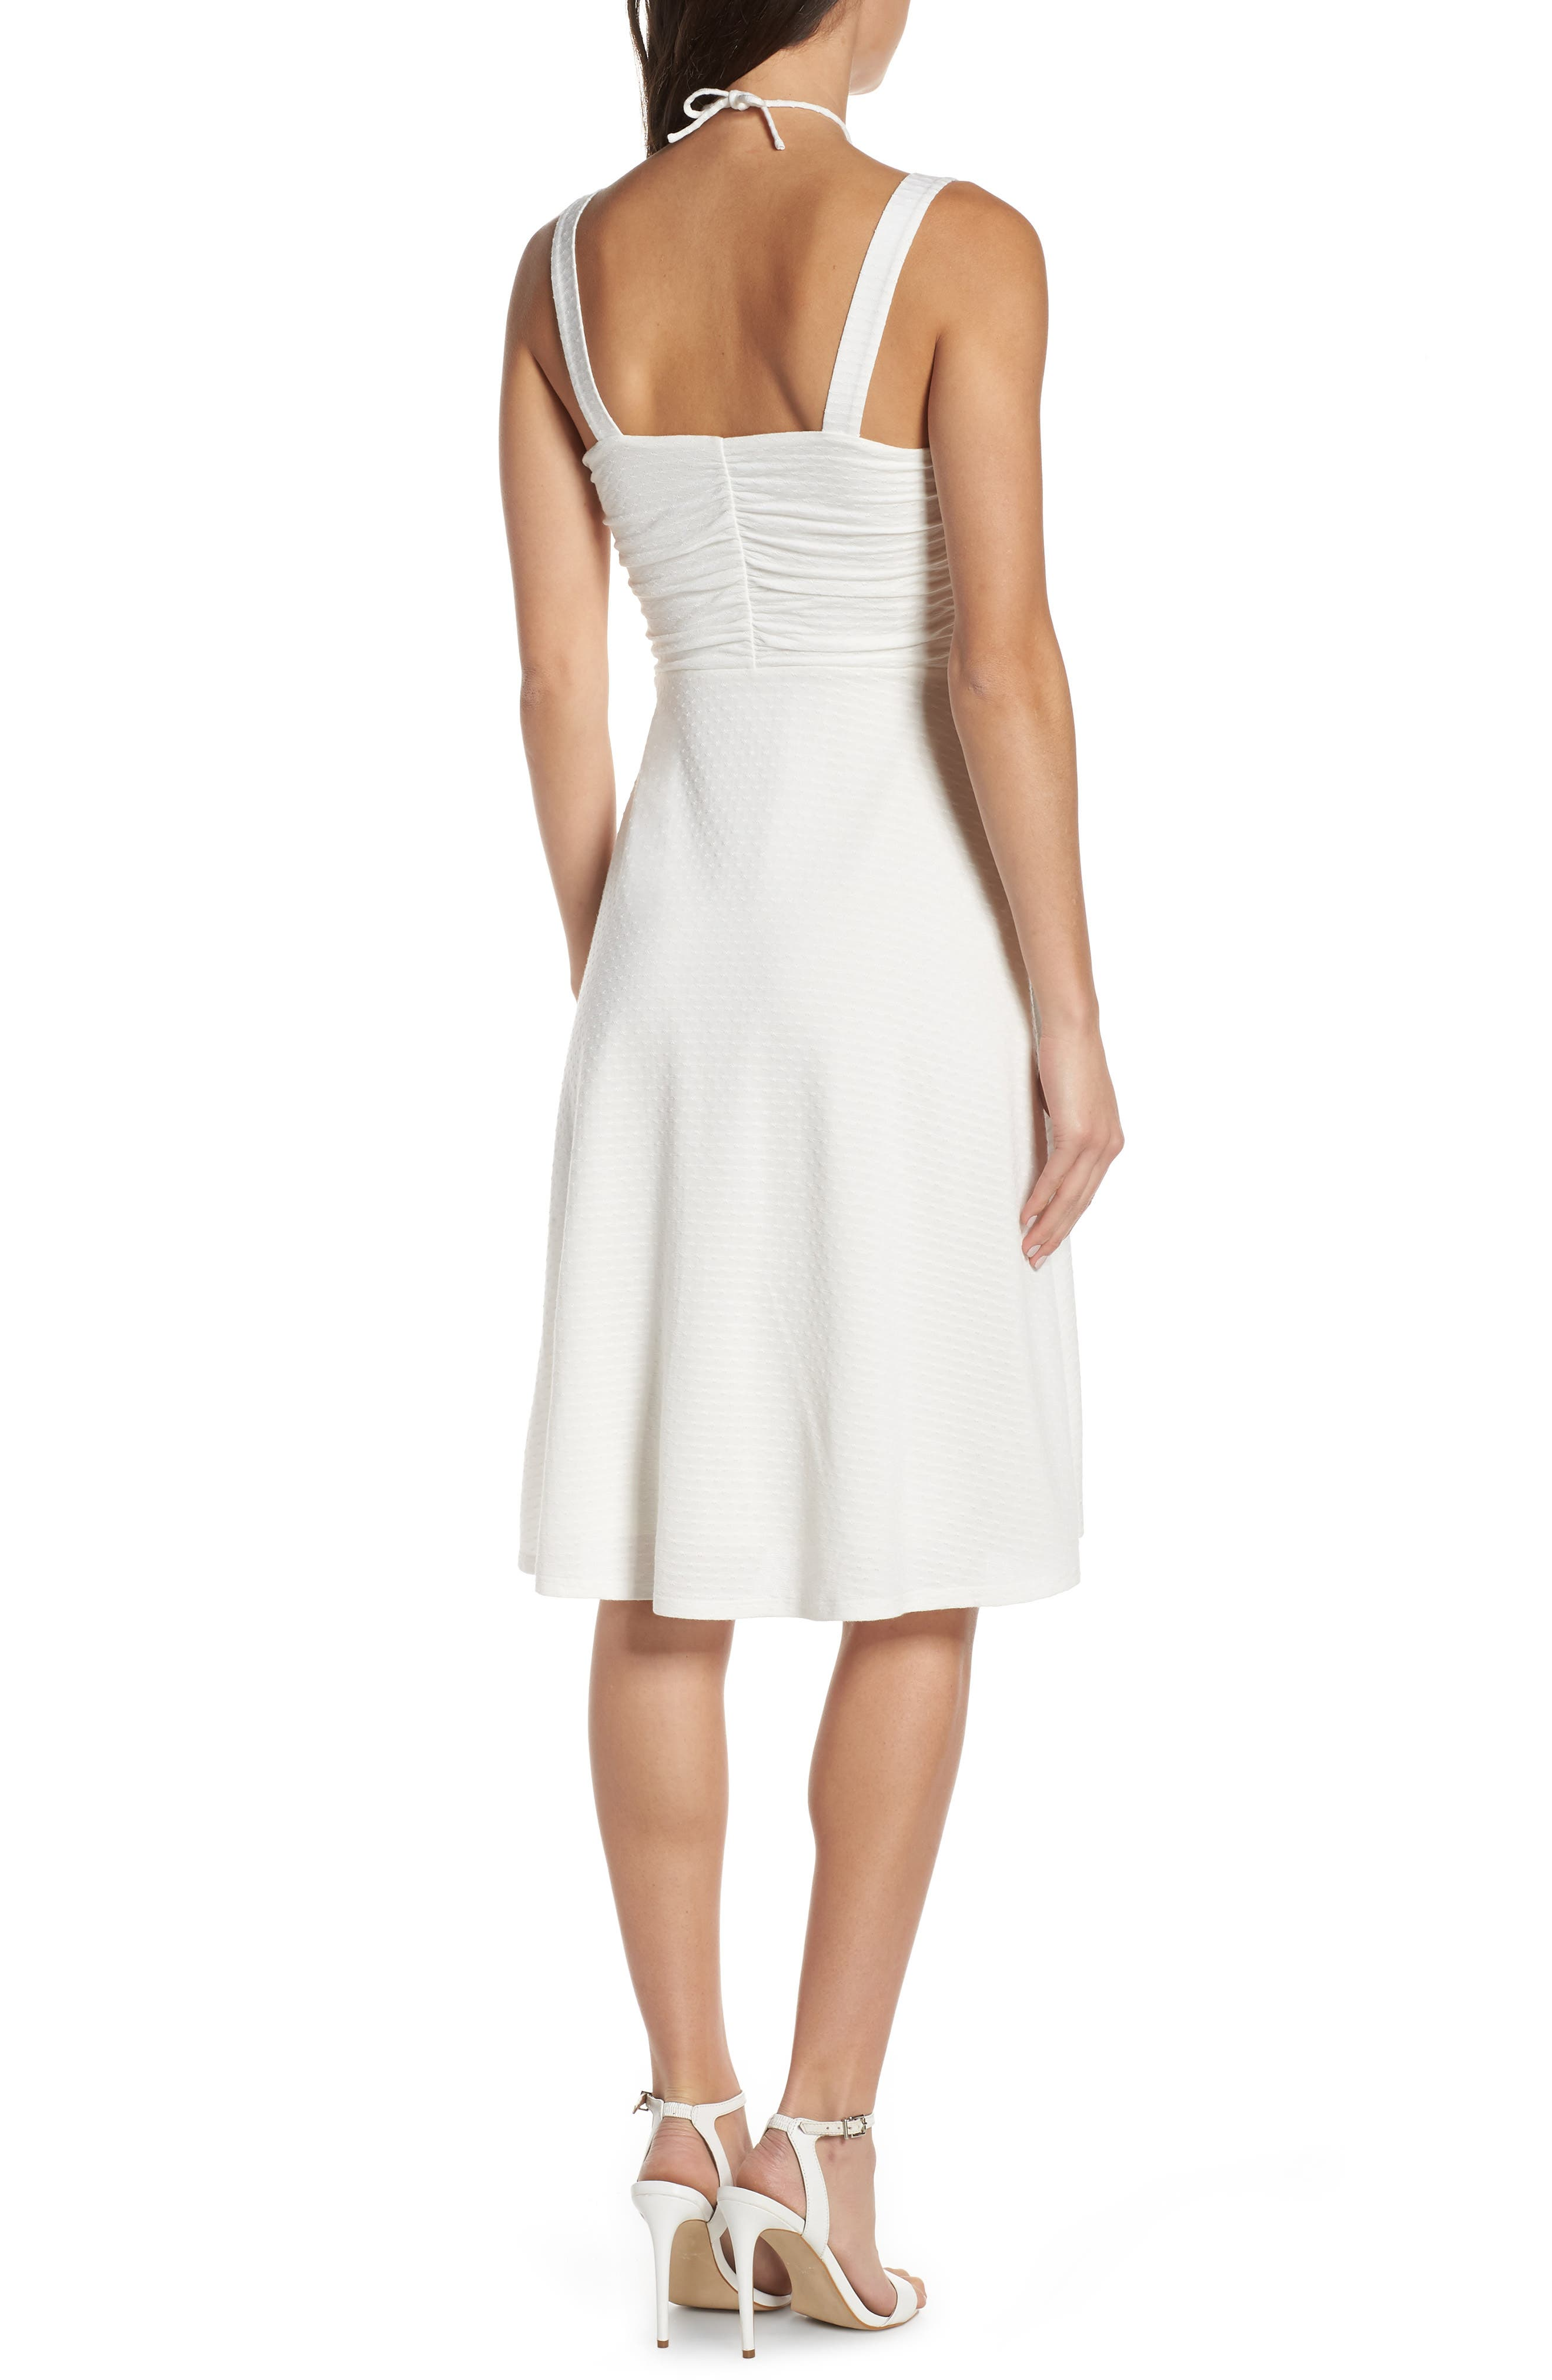 ALI & JAY, Smell the Flowers Fit & Flare Dress, Alternate thumbnail 2, color, WHITE